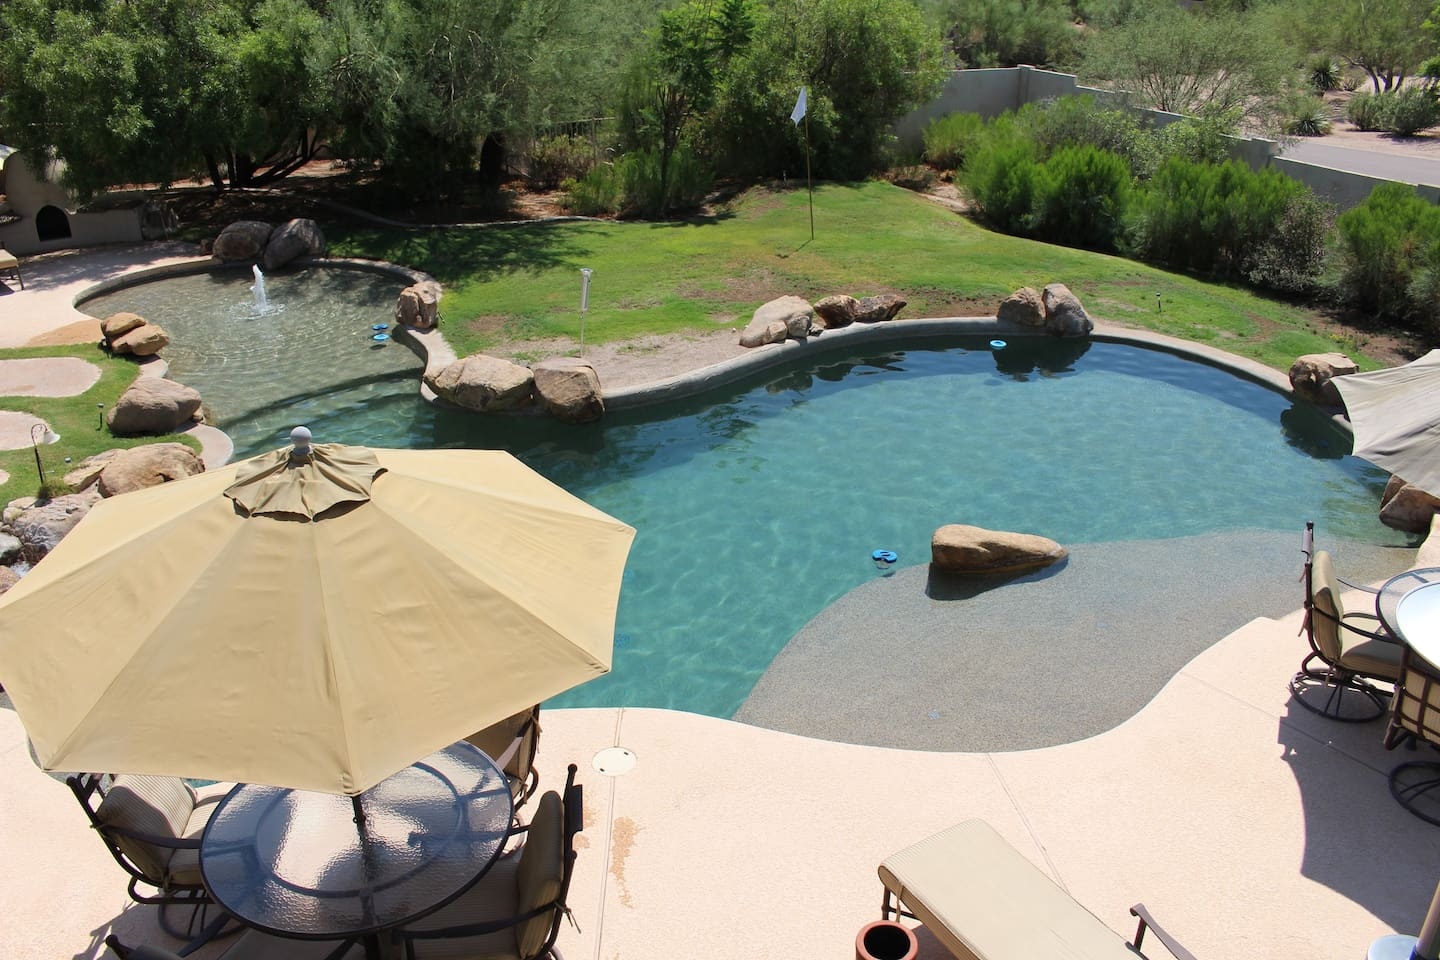 Relax in your private resort type yard in North Scottsdale